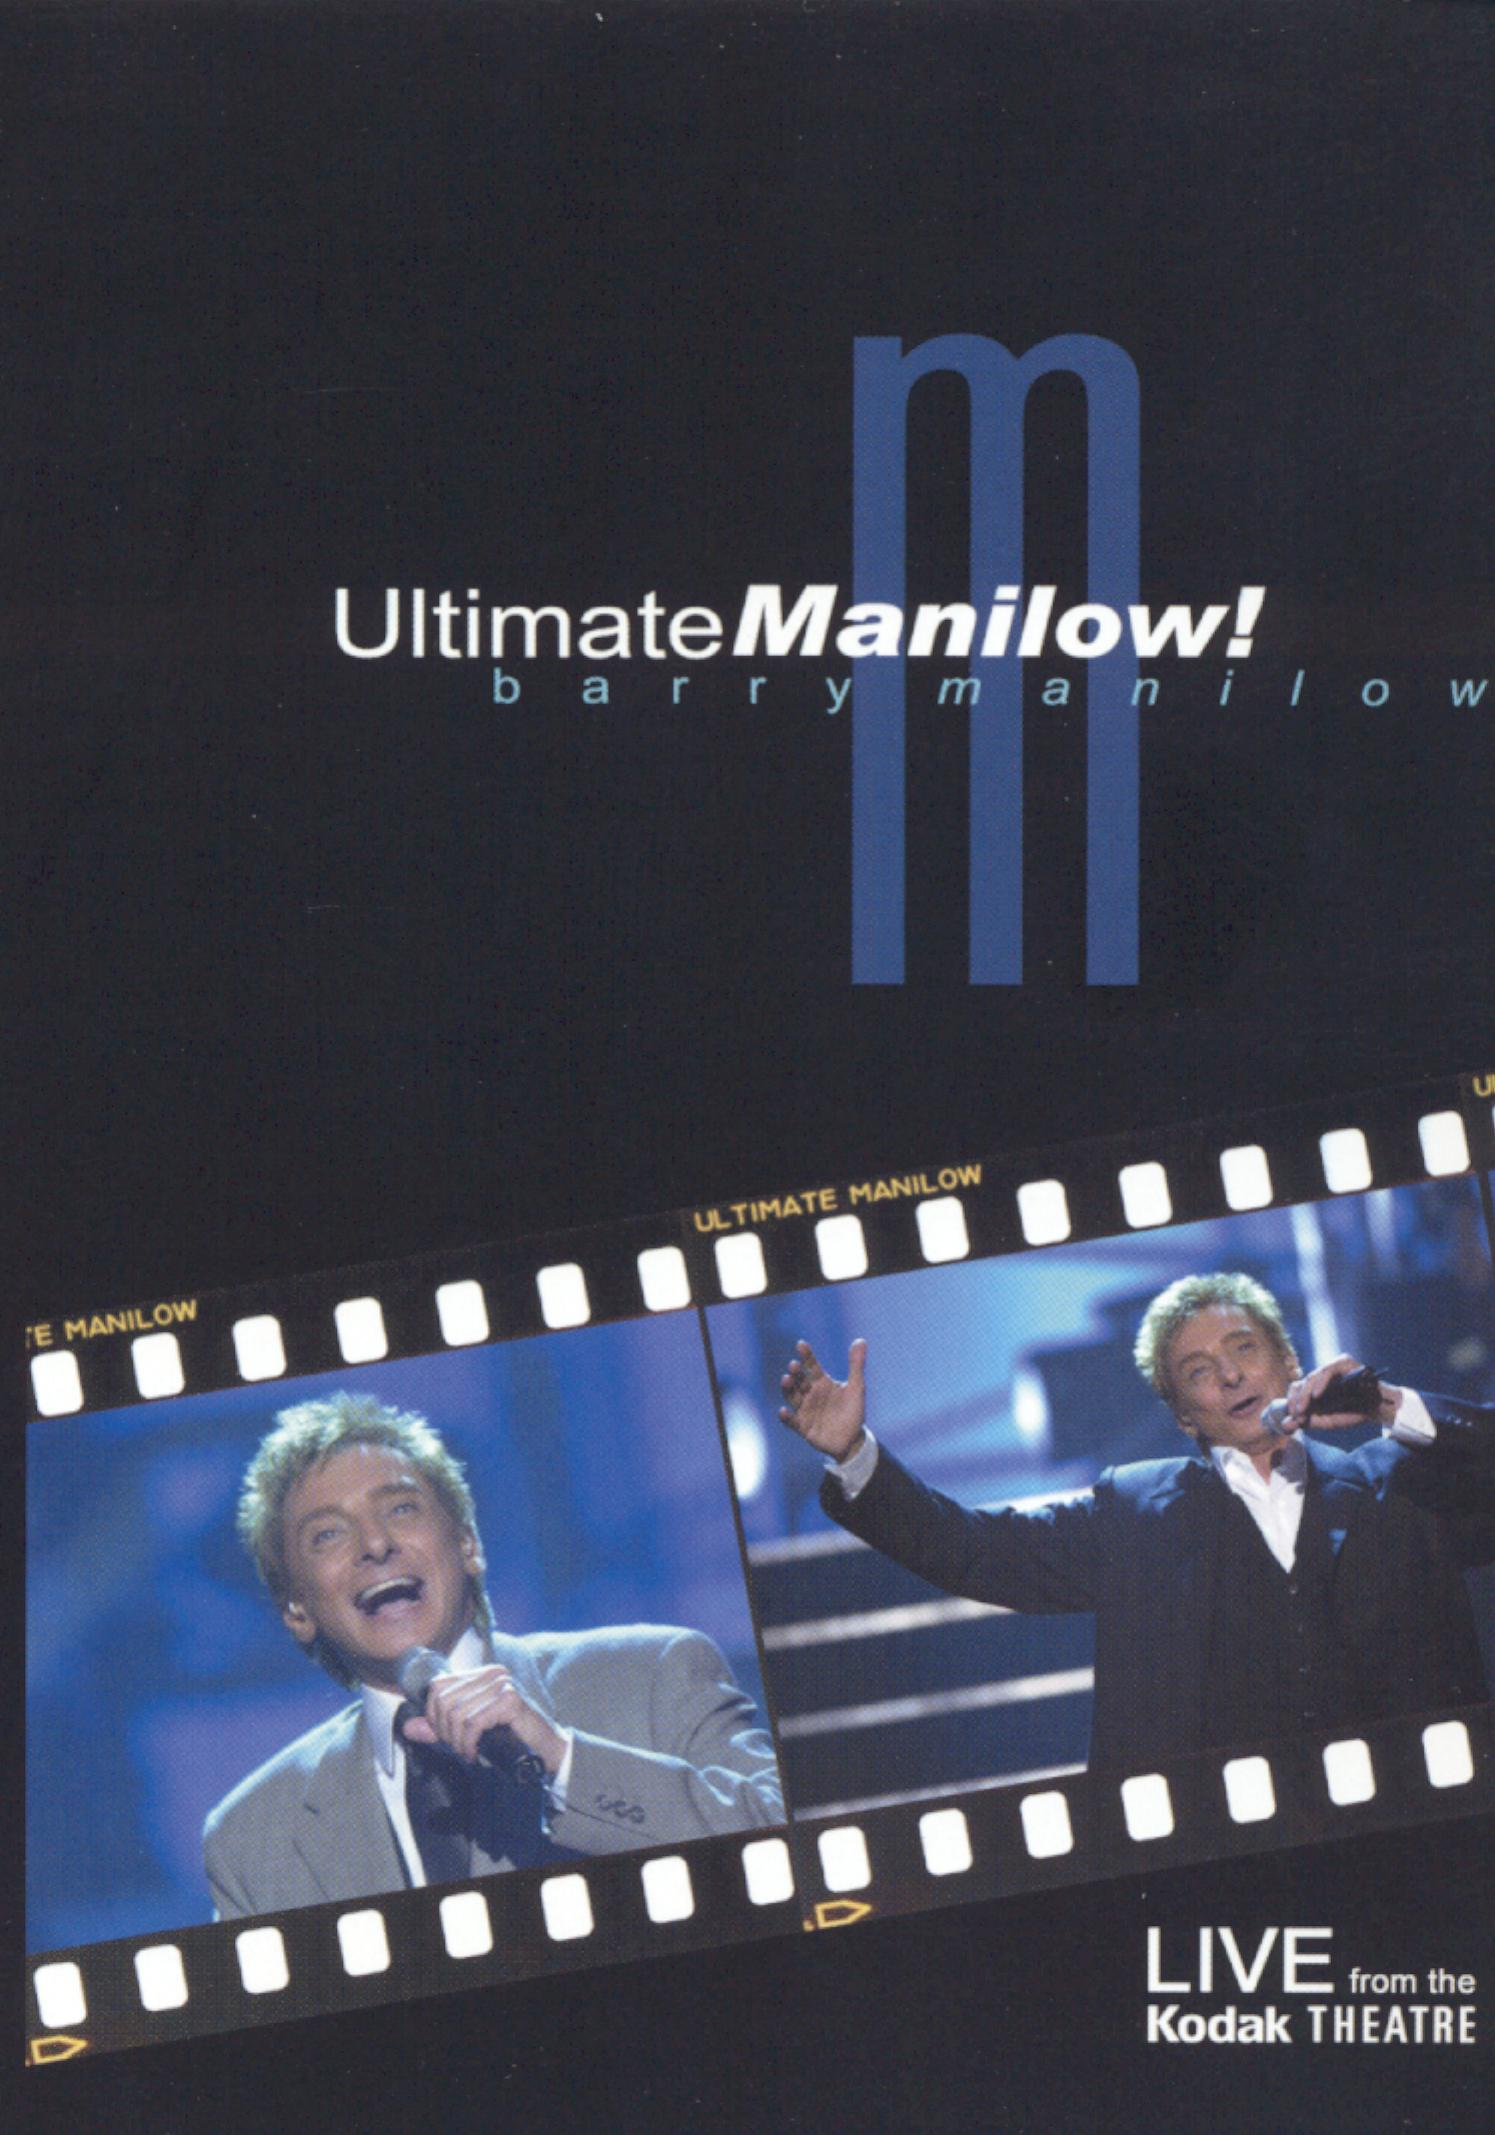 Barry Manilow: Ultimate Manilow!